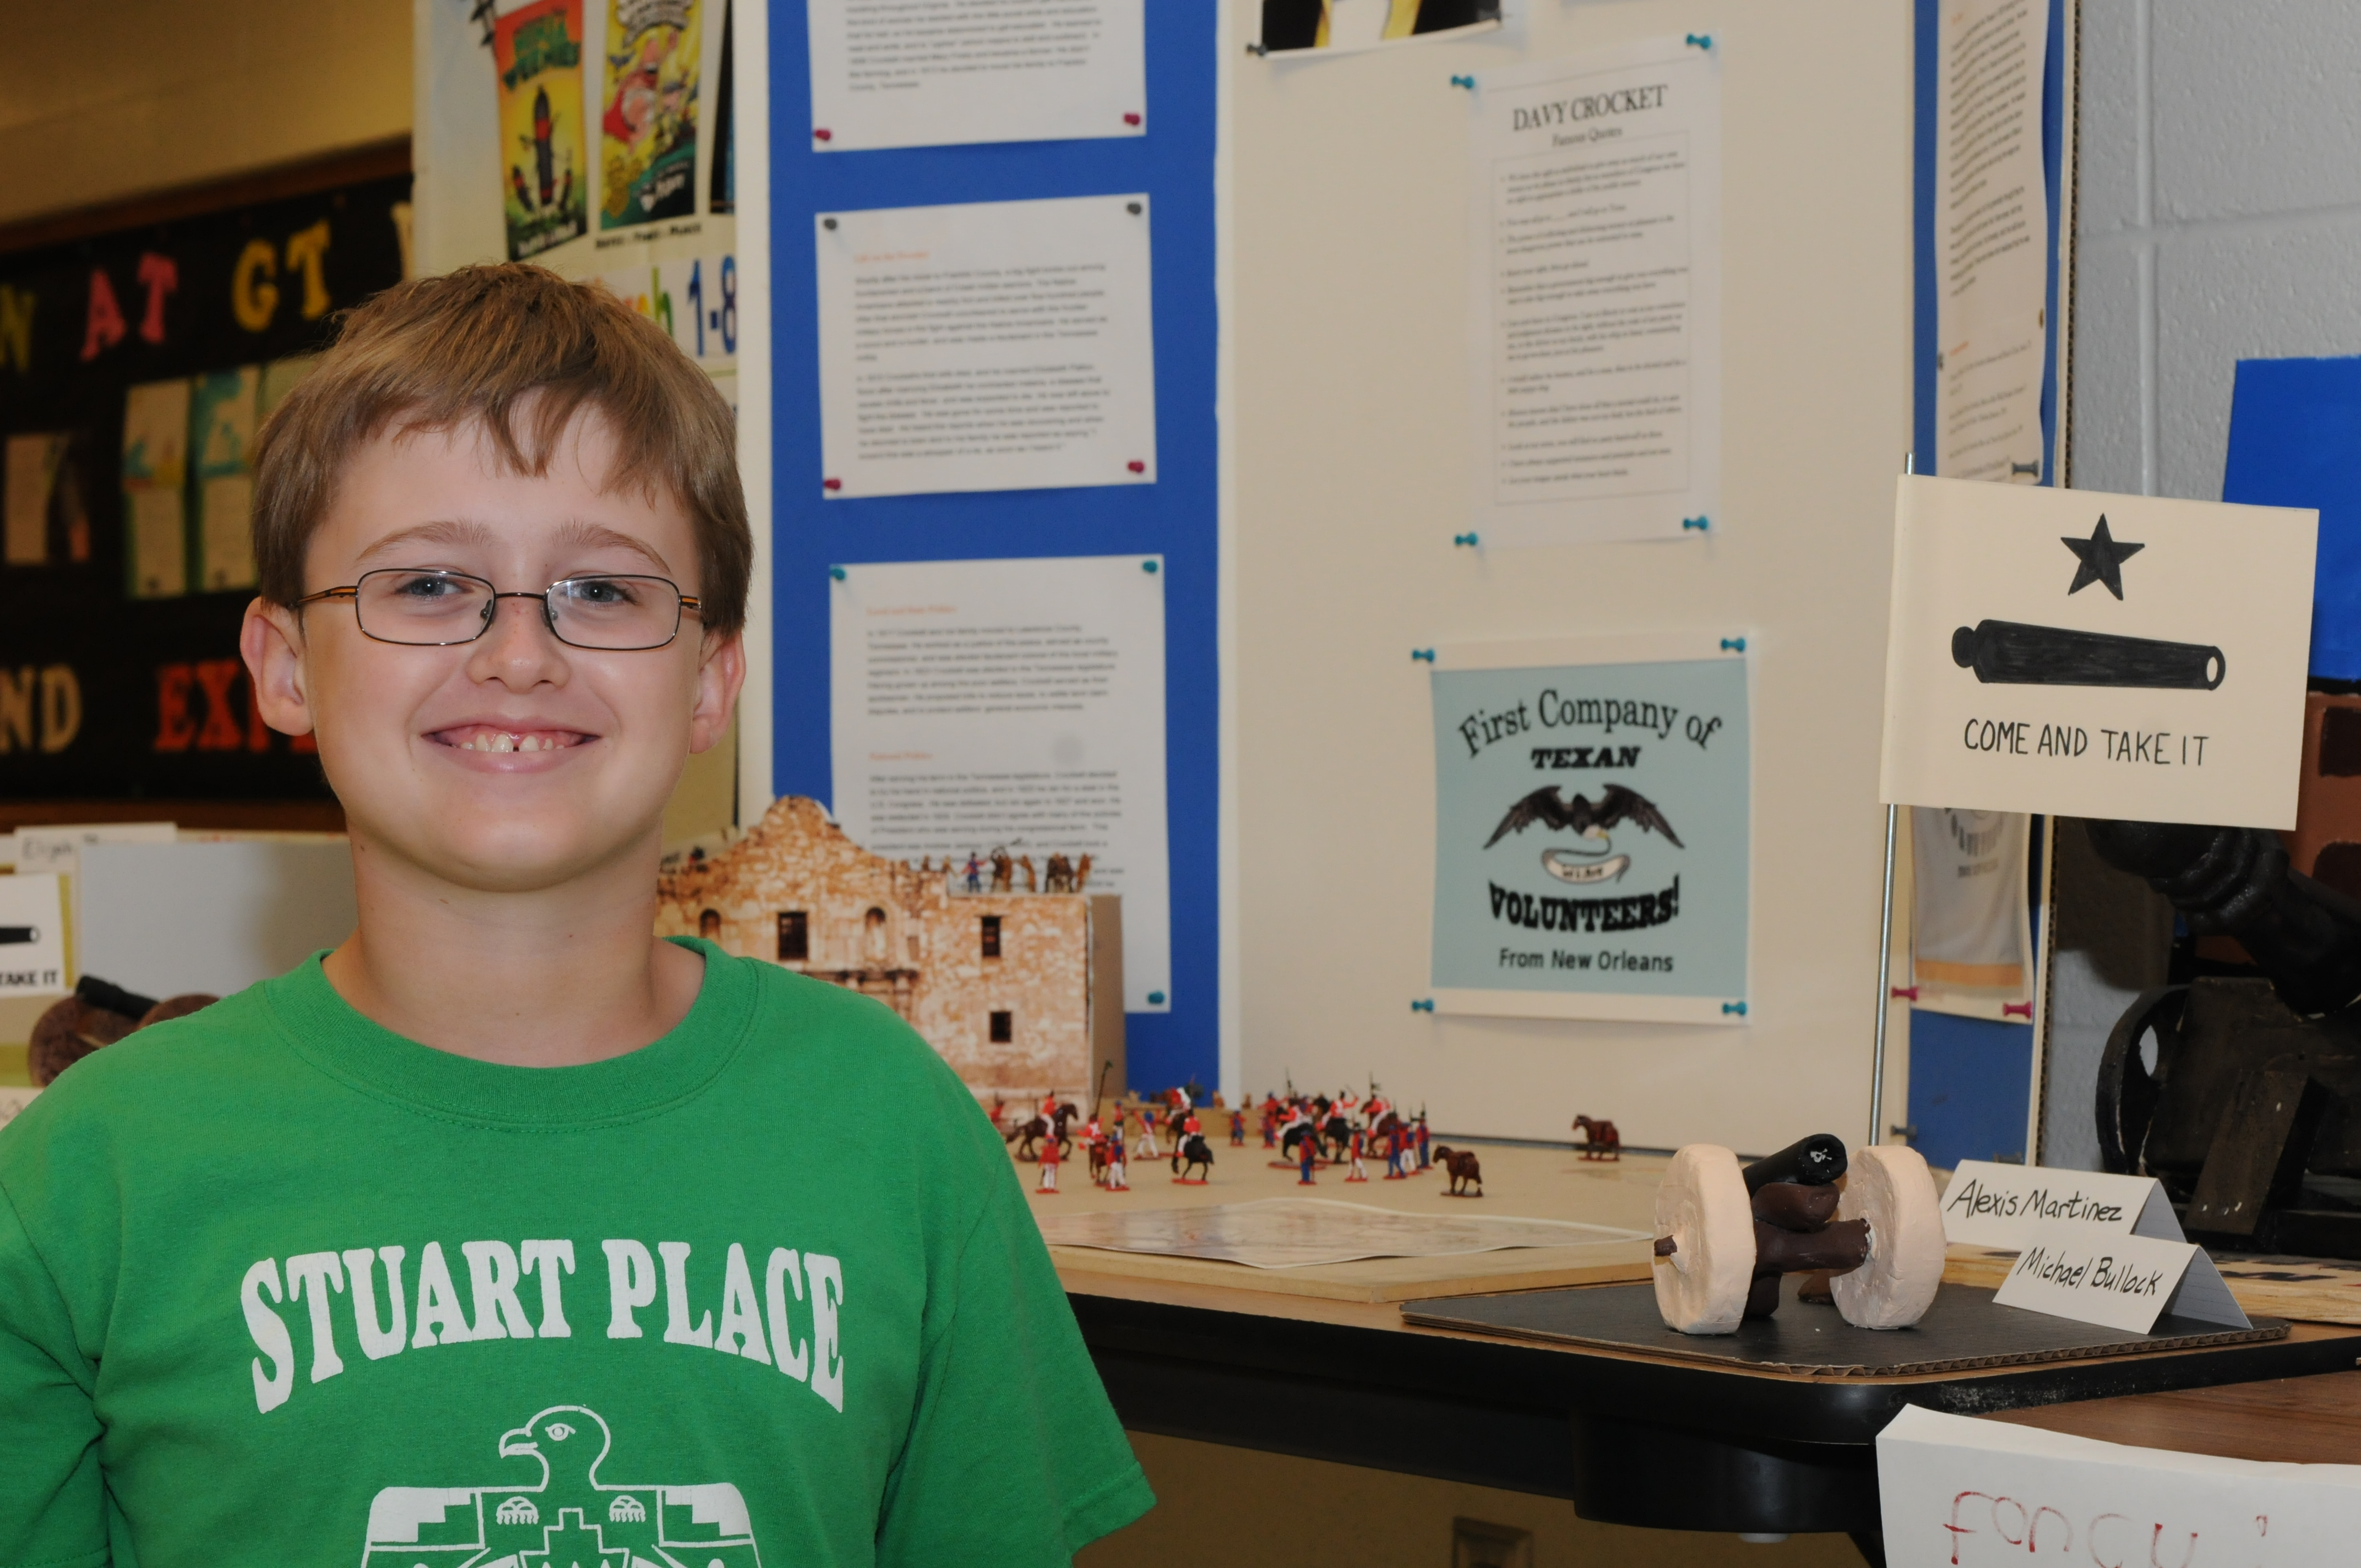 Stuart Place student uses technology to bring history to life